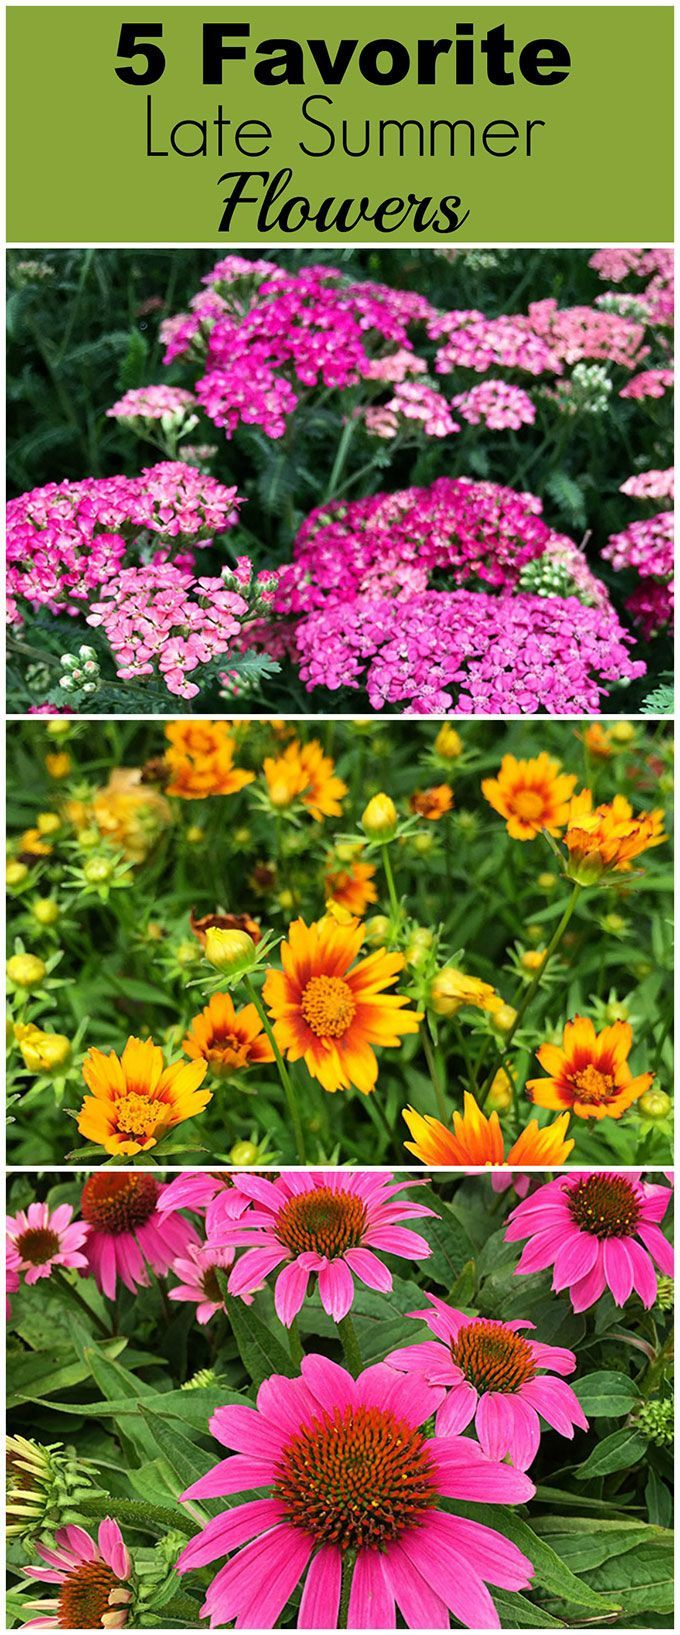 Spring is known for its beautiful blooming flowers, but there are also some flowers that bloom late in the season and even in the fall. This list from House of Hawthornes has five of the best late-blooming plants that you can plant in your garden to keep it looking bright and colorful for as long as possible.